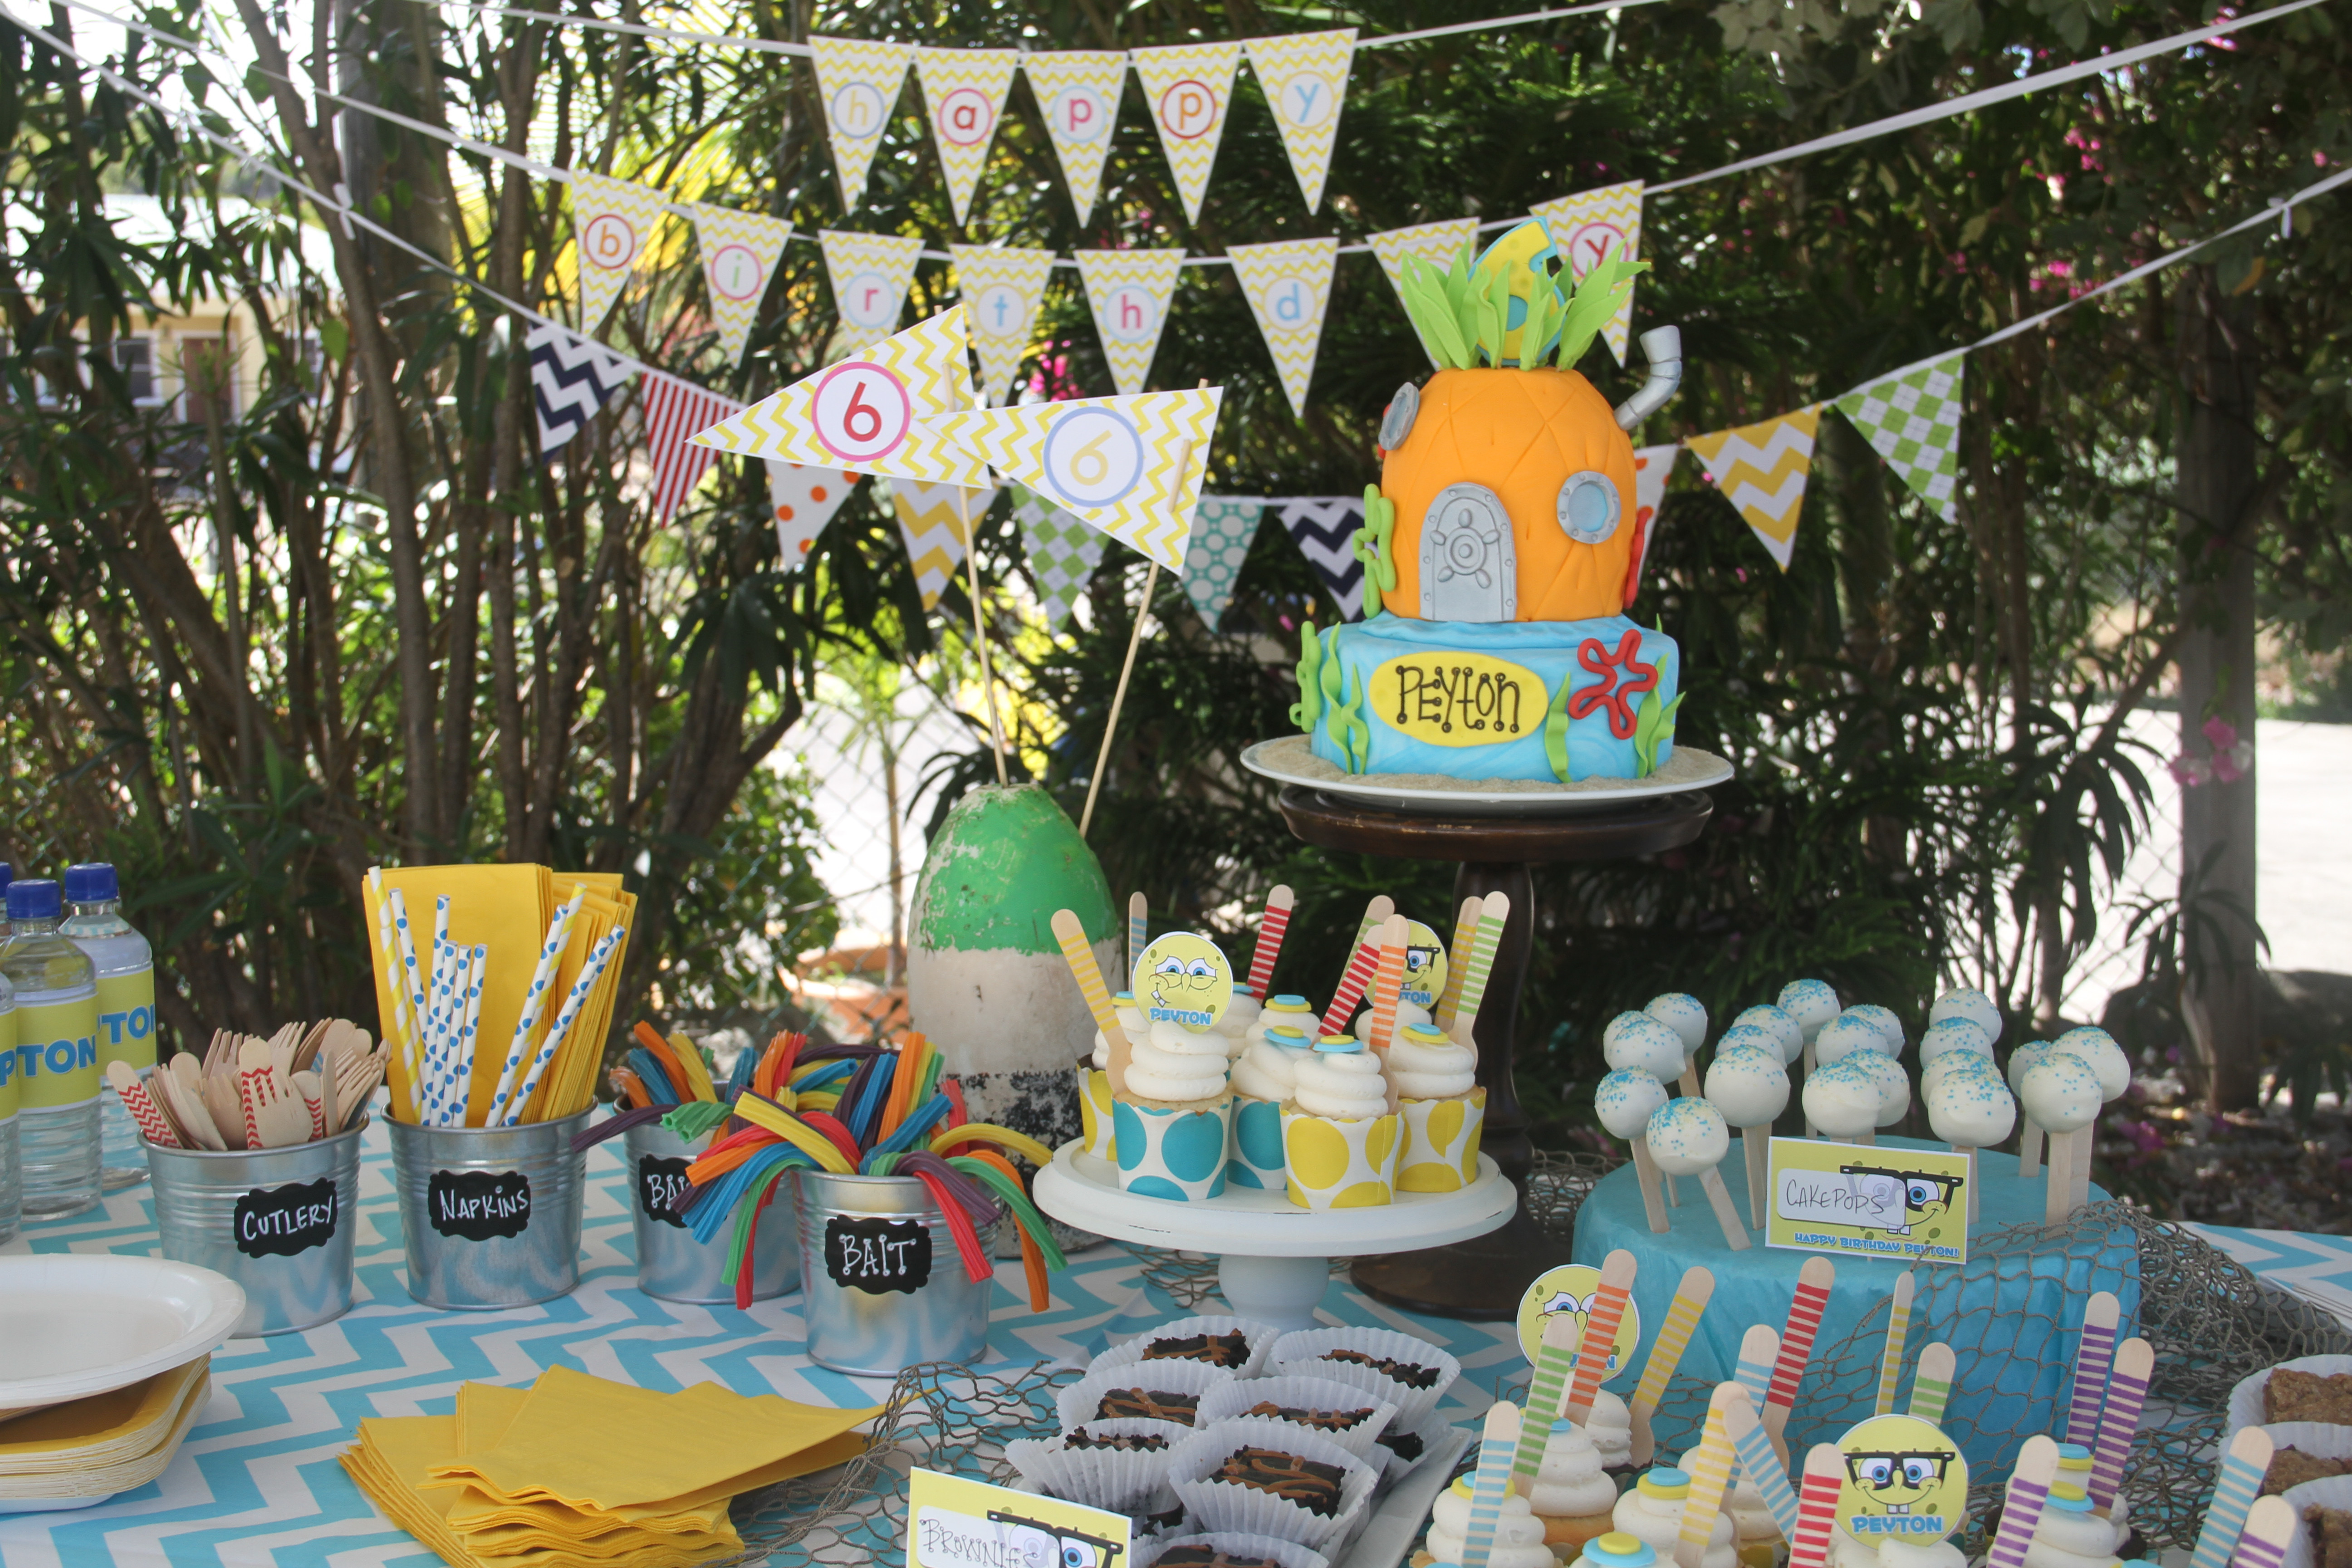 Best ideas about Spongebob Birthday Decorations . Save or Pin mylittlebeanco Now.